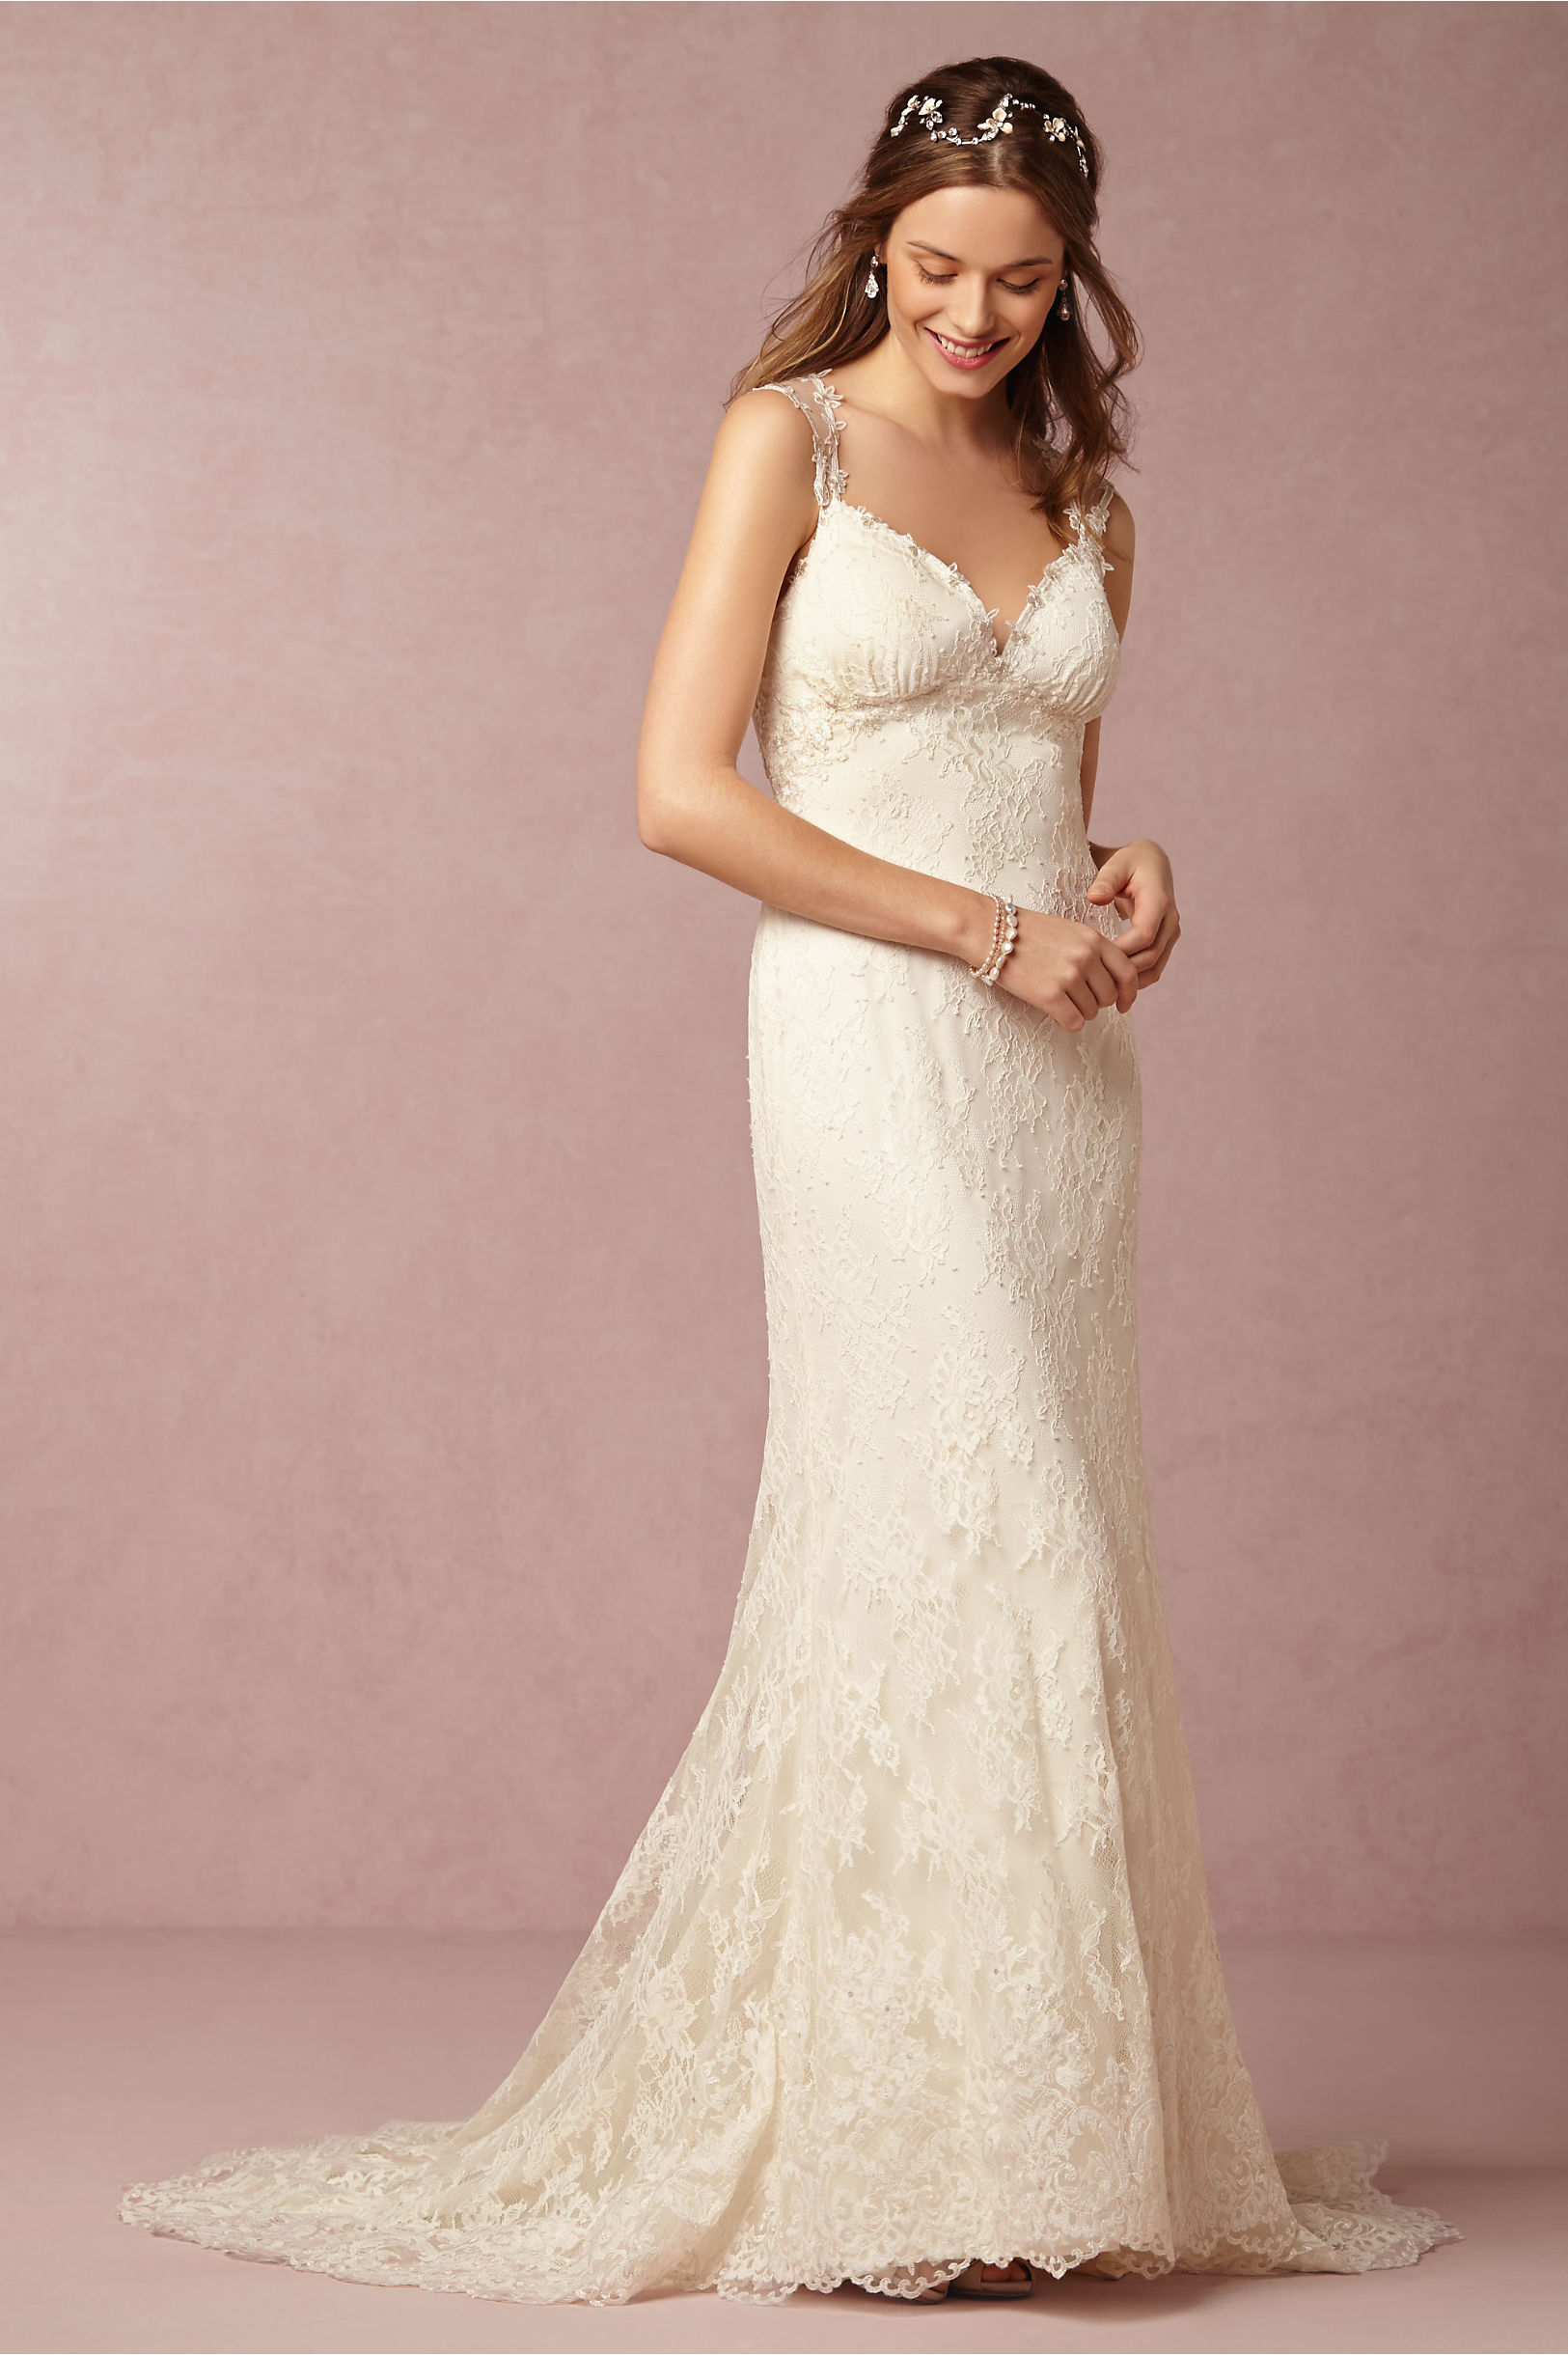 Briar Rose Gown in Sale | BHLDN